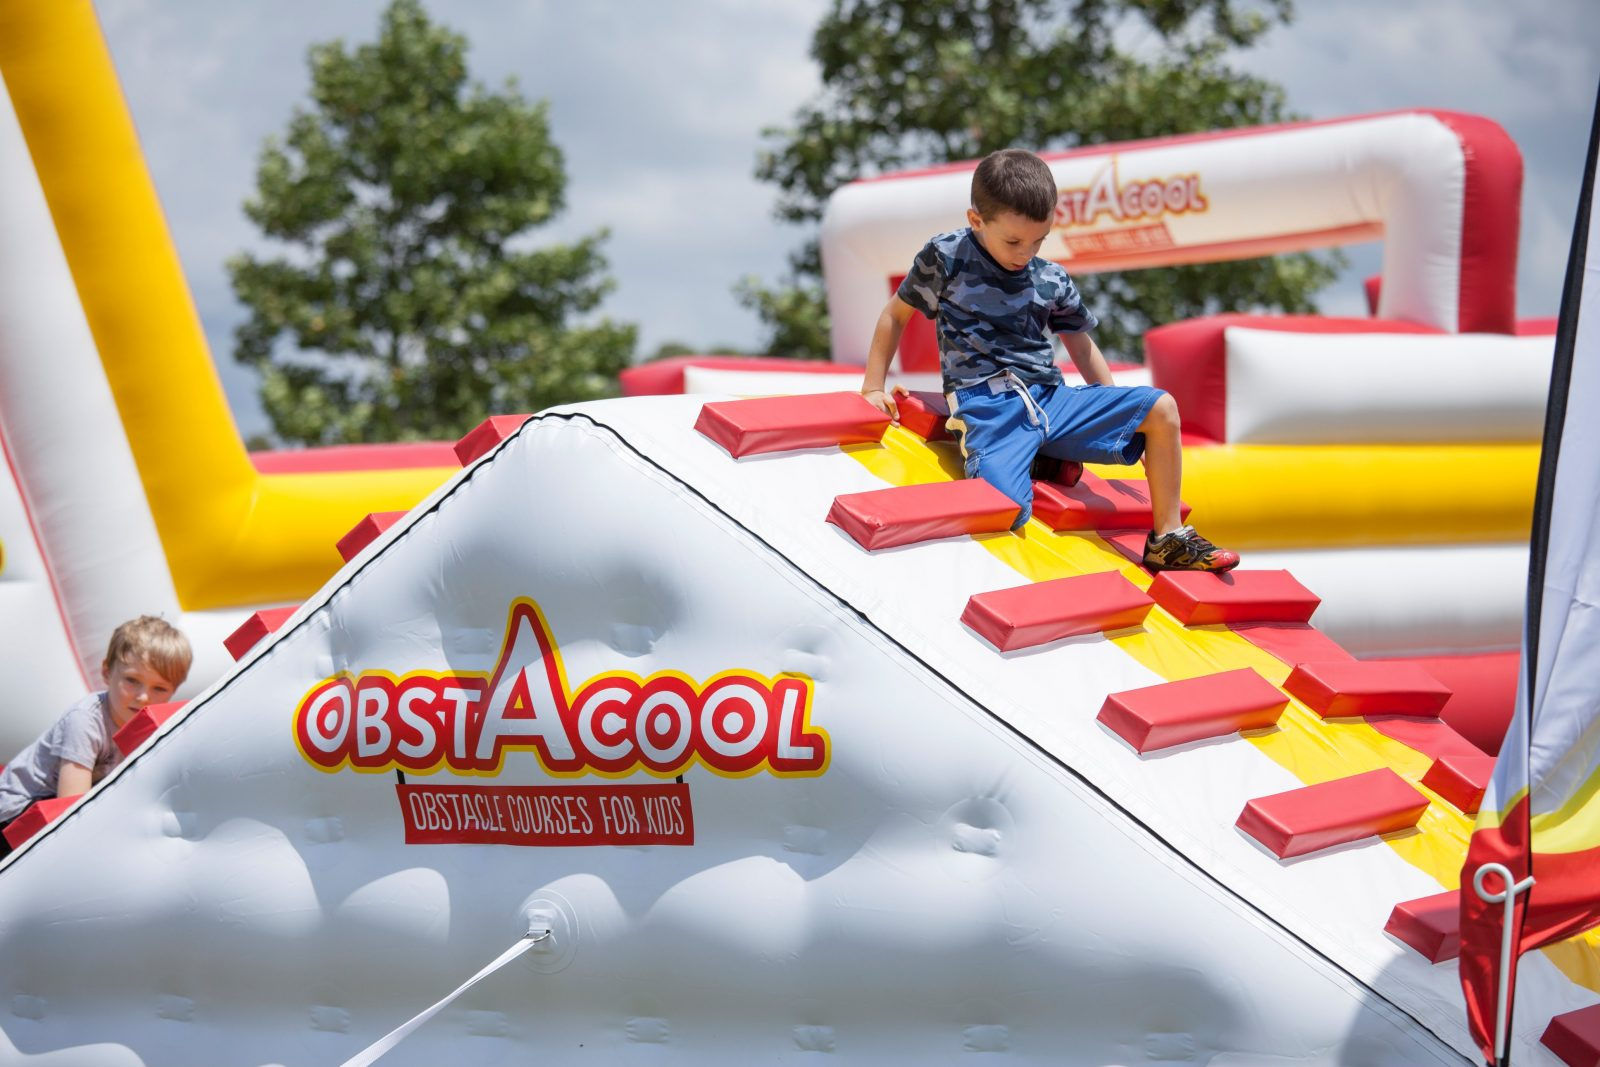 Obstacool ride for children